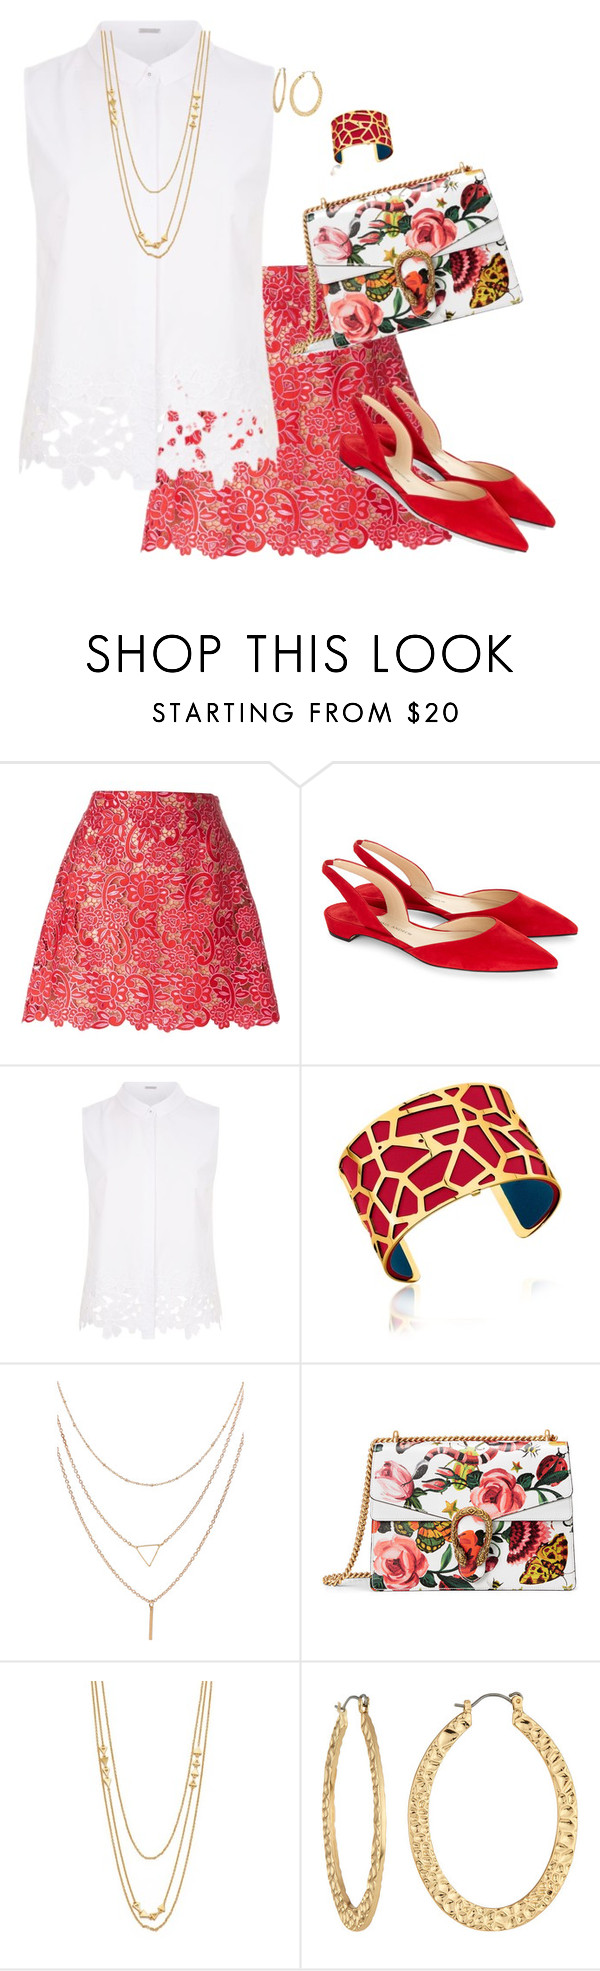 """""""Trending Skirt"""" by toots2271 ❤ liked on Polyvore featuring Marco de Vincenzo, Paul Andrew, Elie Tahari, Les Georgettes, Gucci, Gorjana and Fragments"""